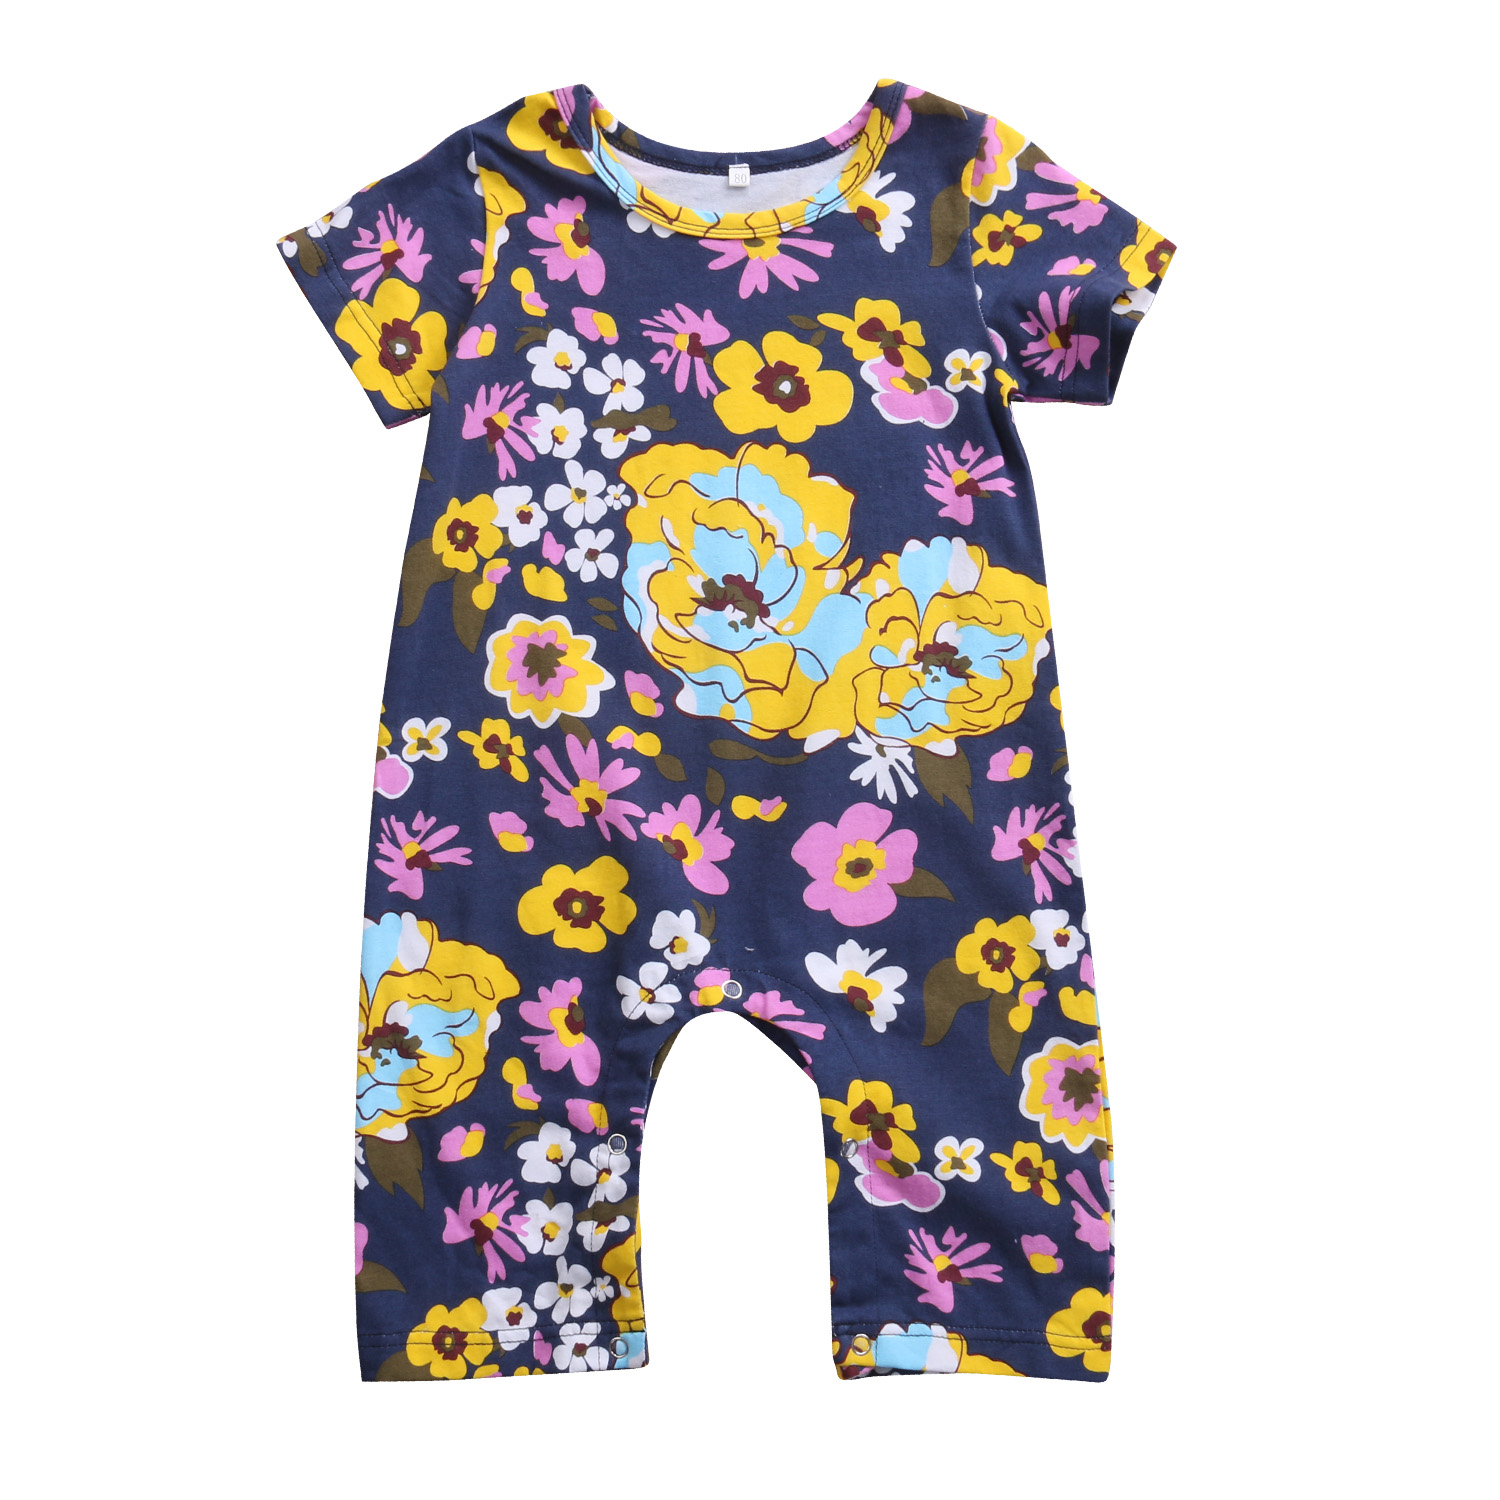 Newborn Toddler Baby Girls Floral Rompers Jumpsuit Playsuit Outfit Clothes 0-3Y